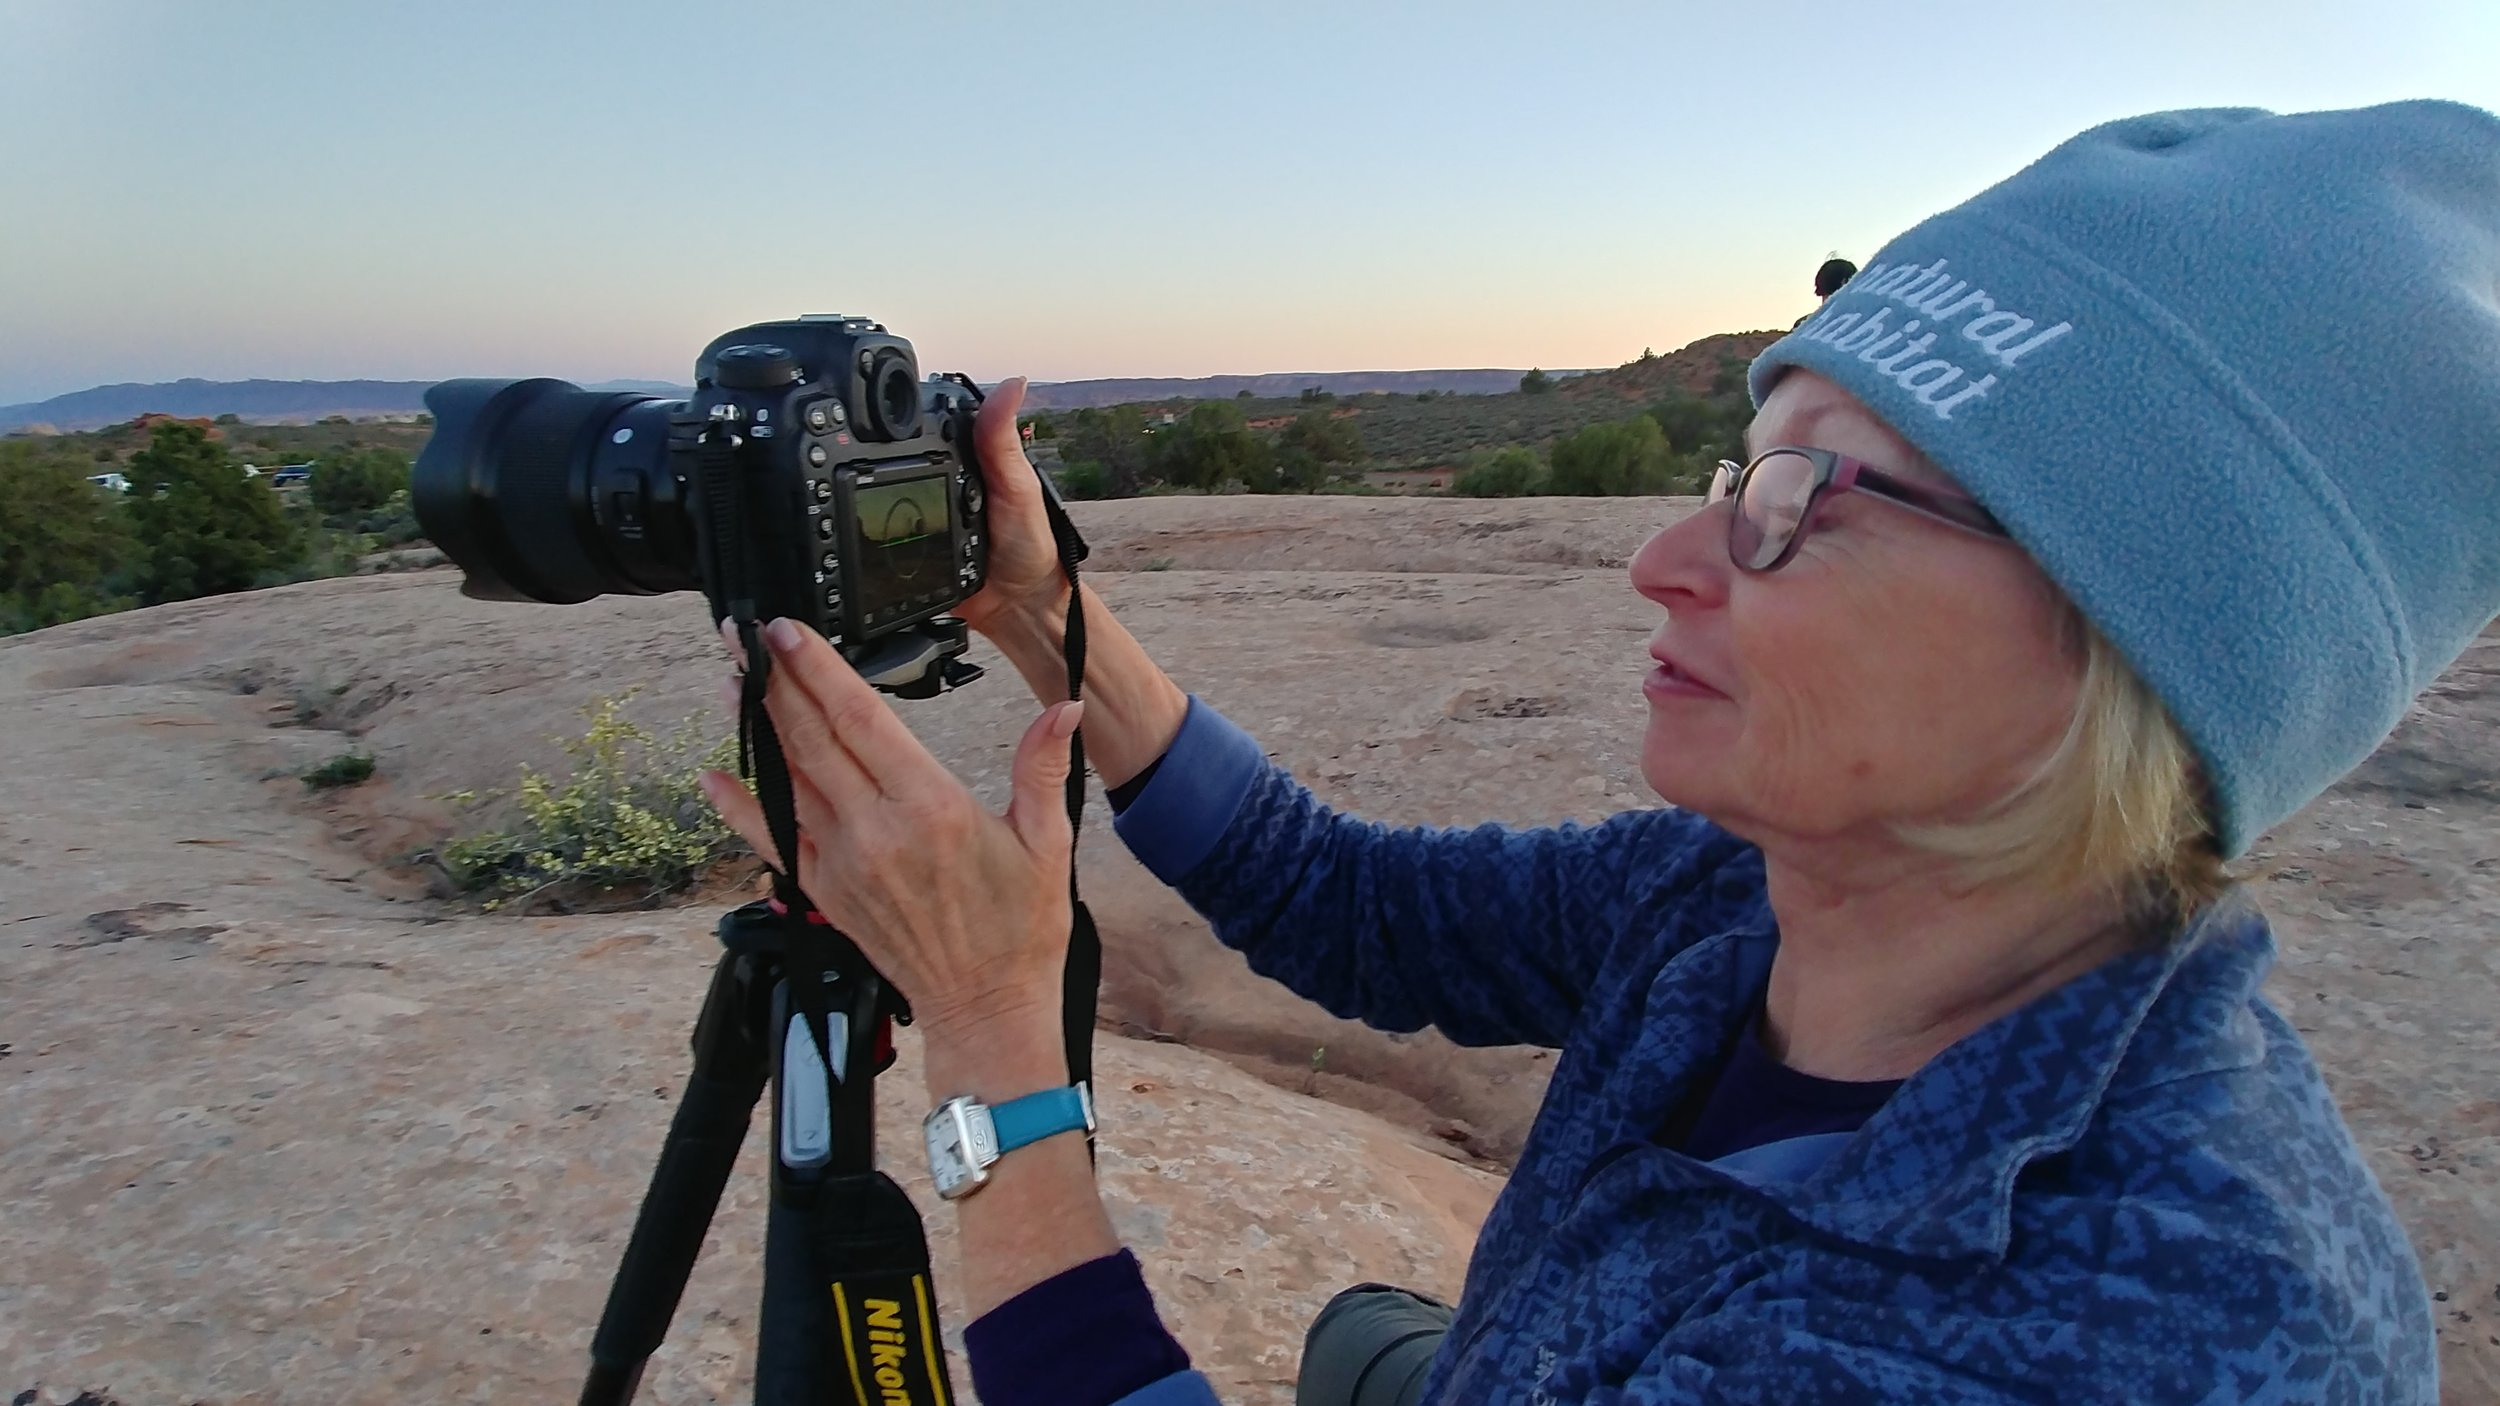 Night photography student Linda Haehnle adjusts the settings on her Nikon D500 during a workshop in Arches National Park.